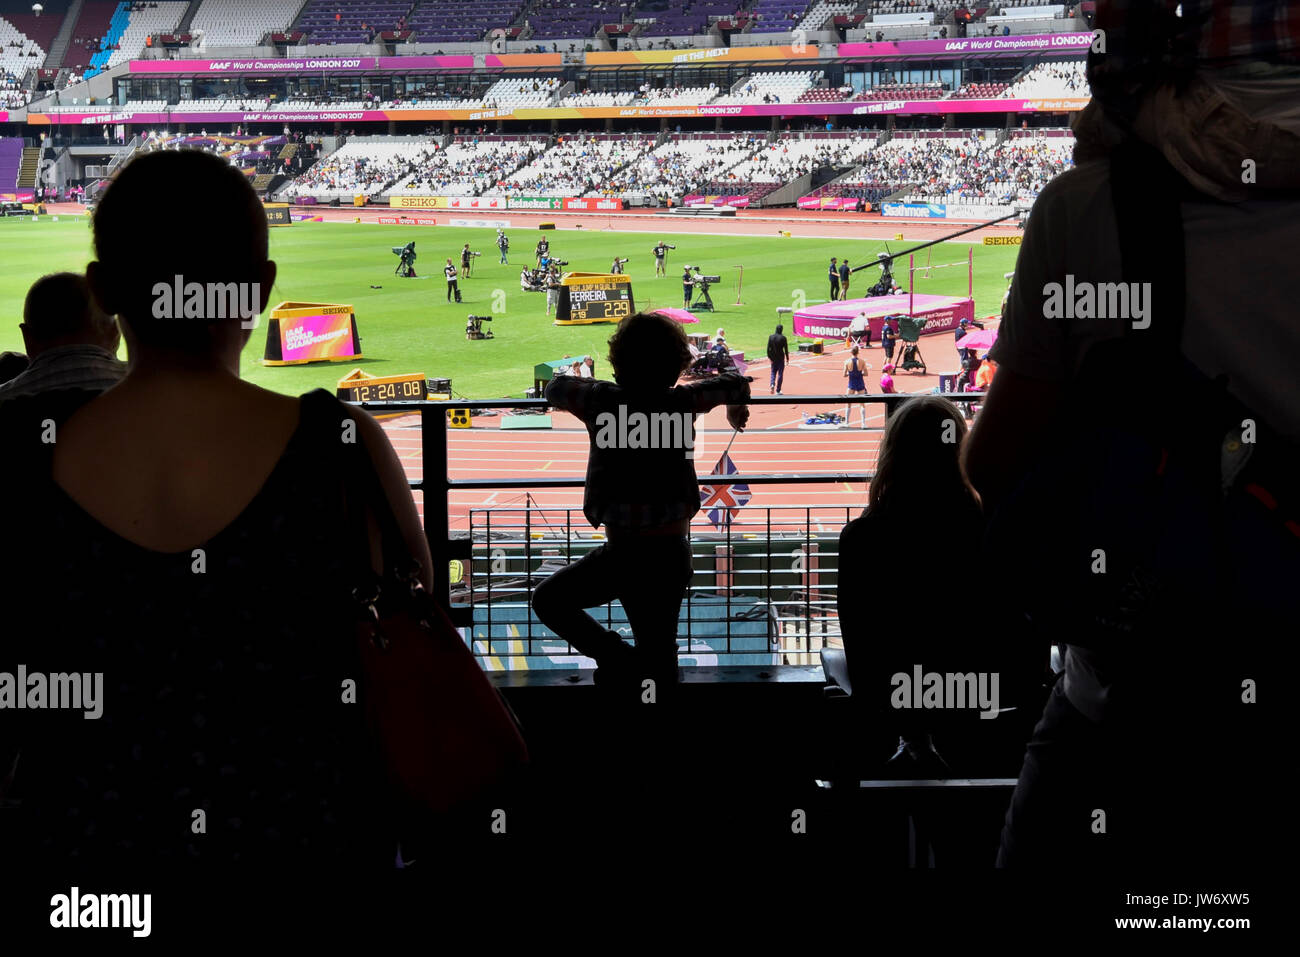 Londres, Royaume-Uni. 11 août 2017. Un jeune fan est vu en silhouette regardant la qualification de saut en hauteur au stade de Londres, le huitième jour de l'IAAF World Championships London 2017. Crédit : Stephen Chung / Alamy Live News Photo Stock